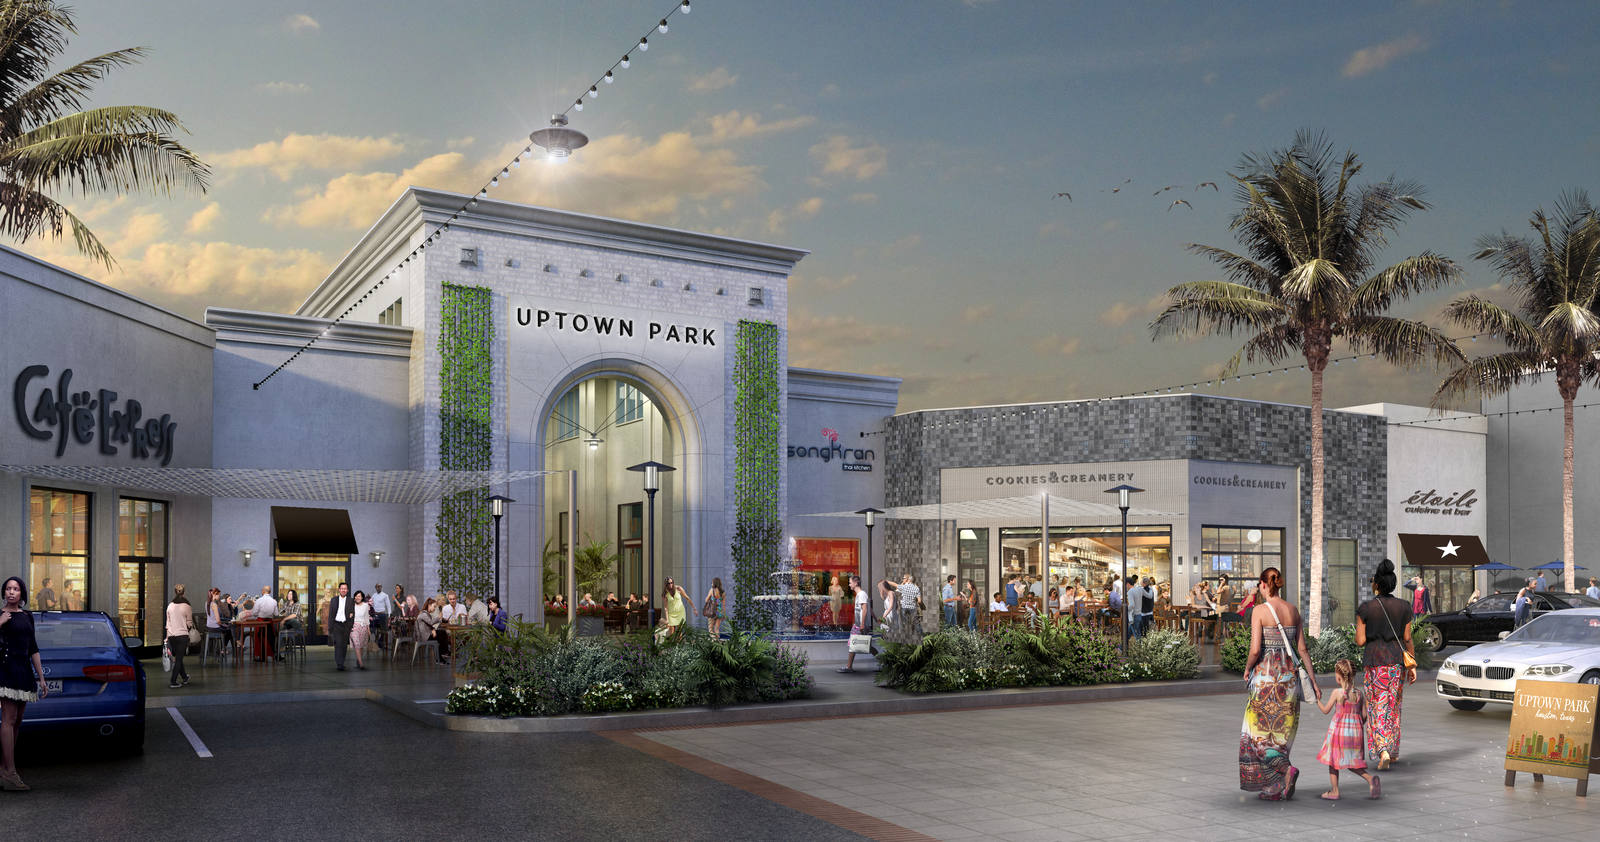 Uptown Park Best Shopping Place in Houston